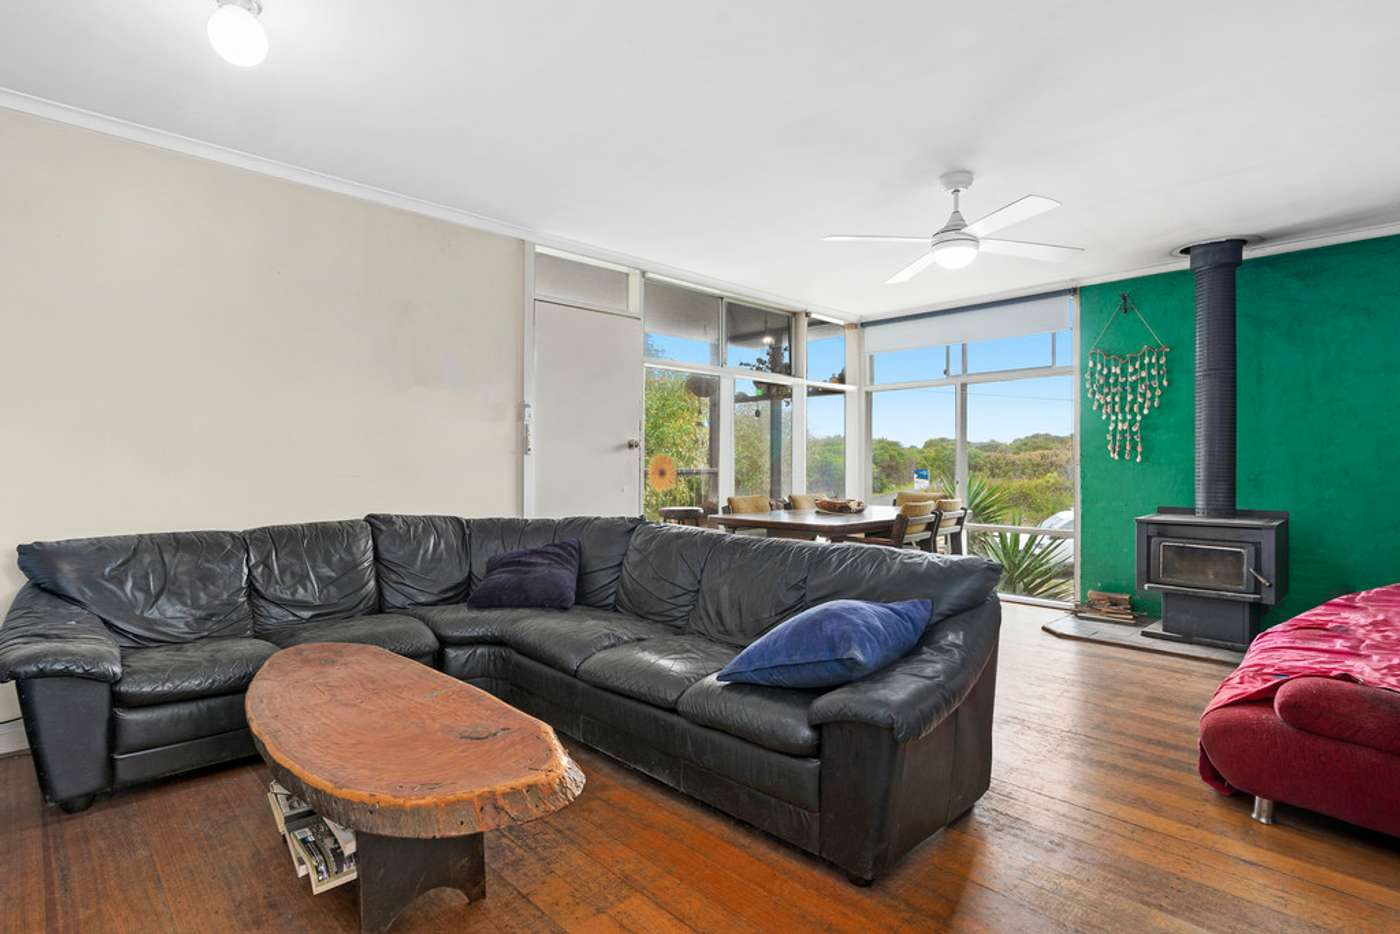 Fifth view of Homely house listing, 7 Ocean Boulevard, Jan Juc VIC 3228